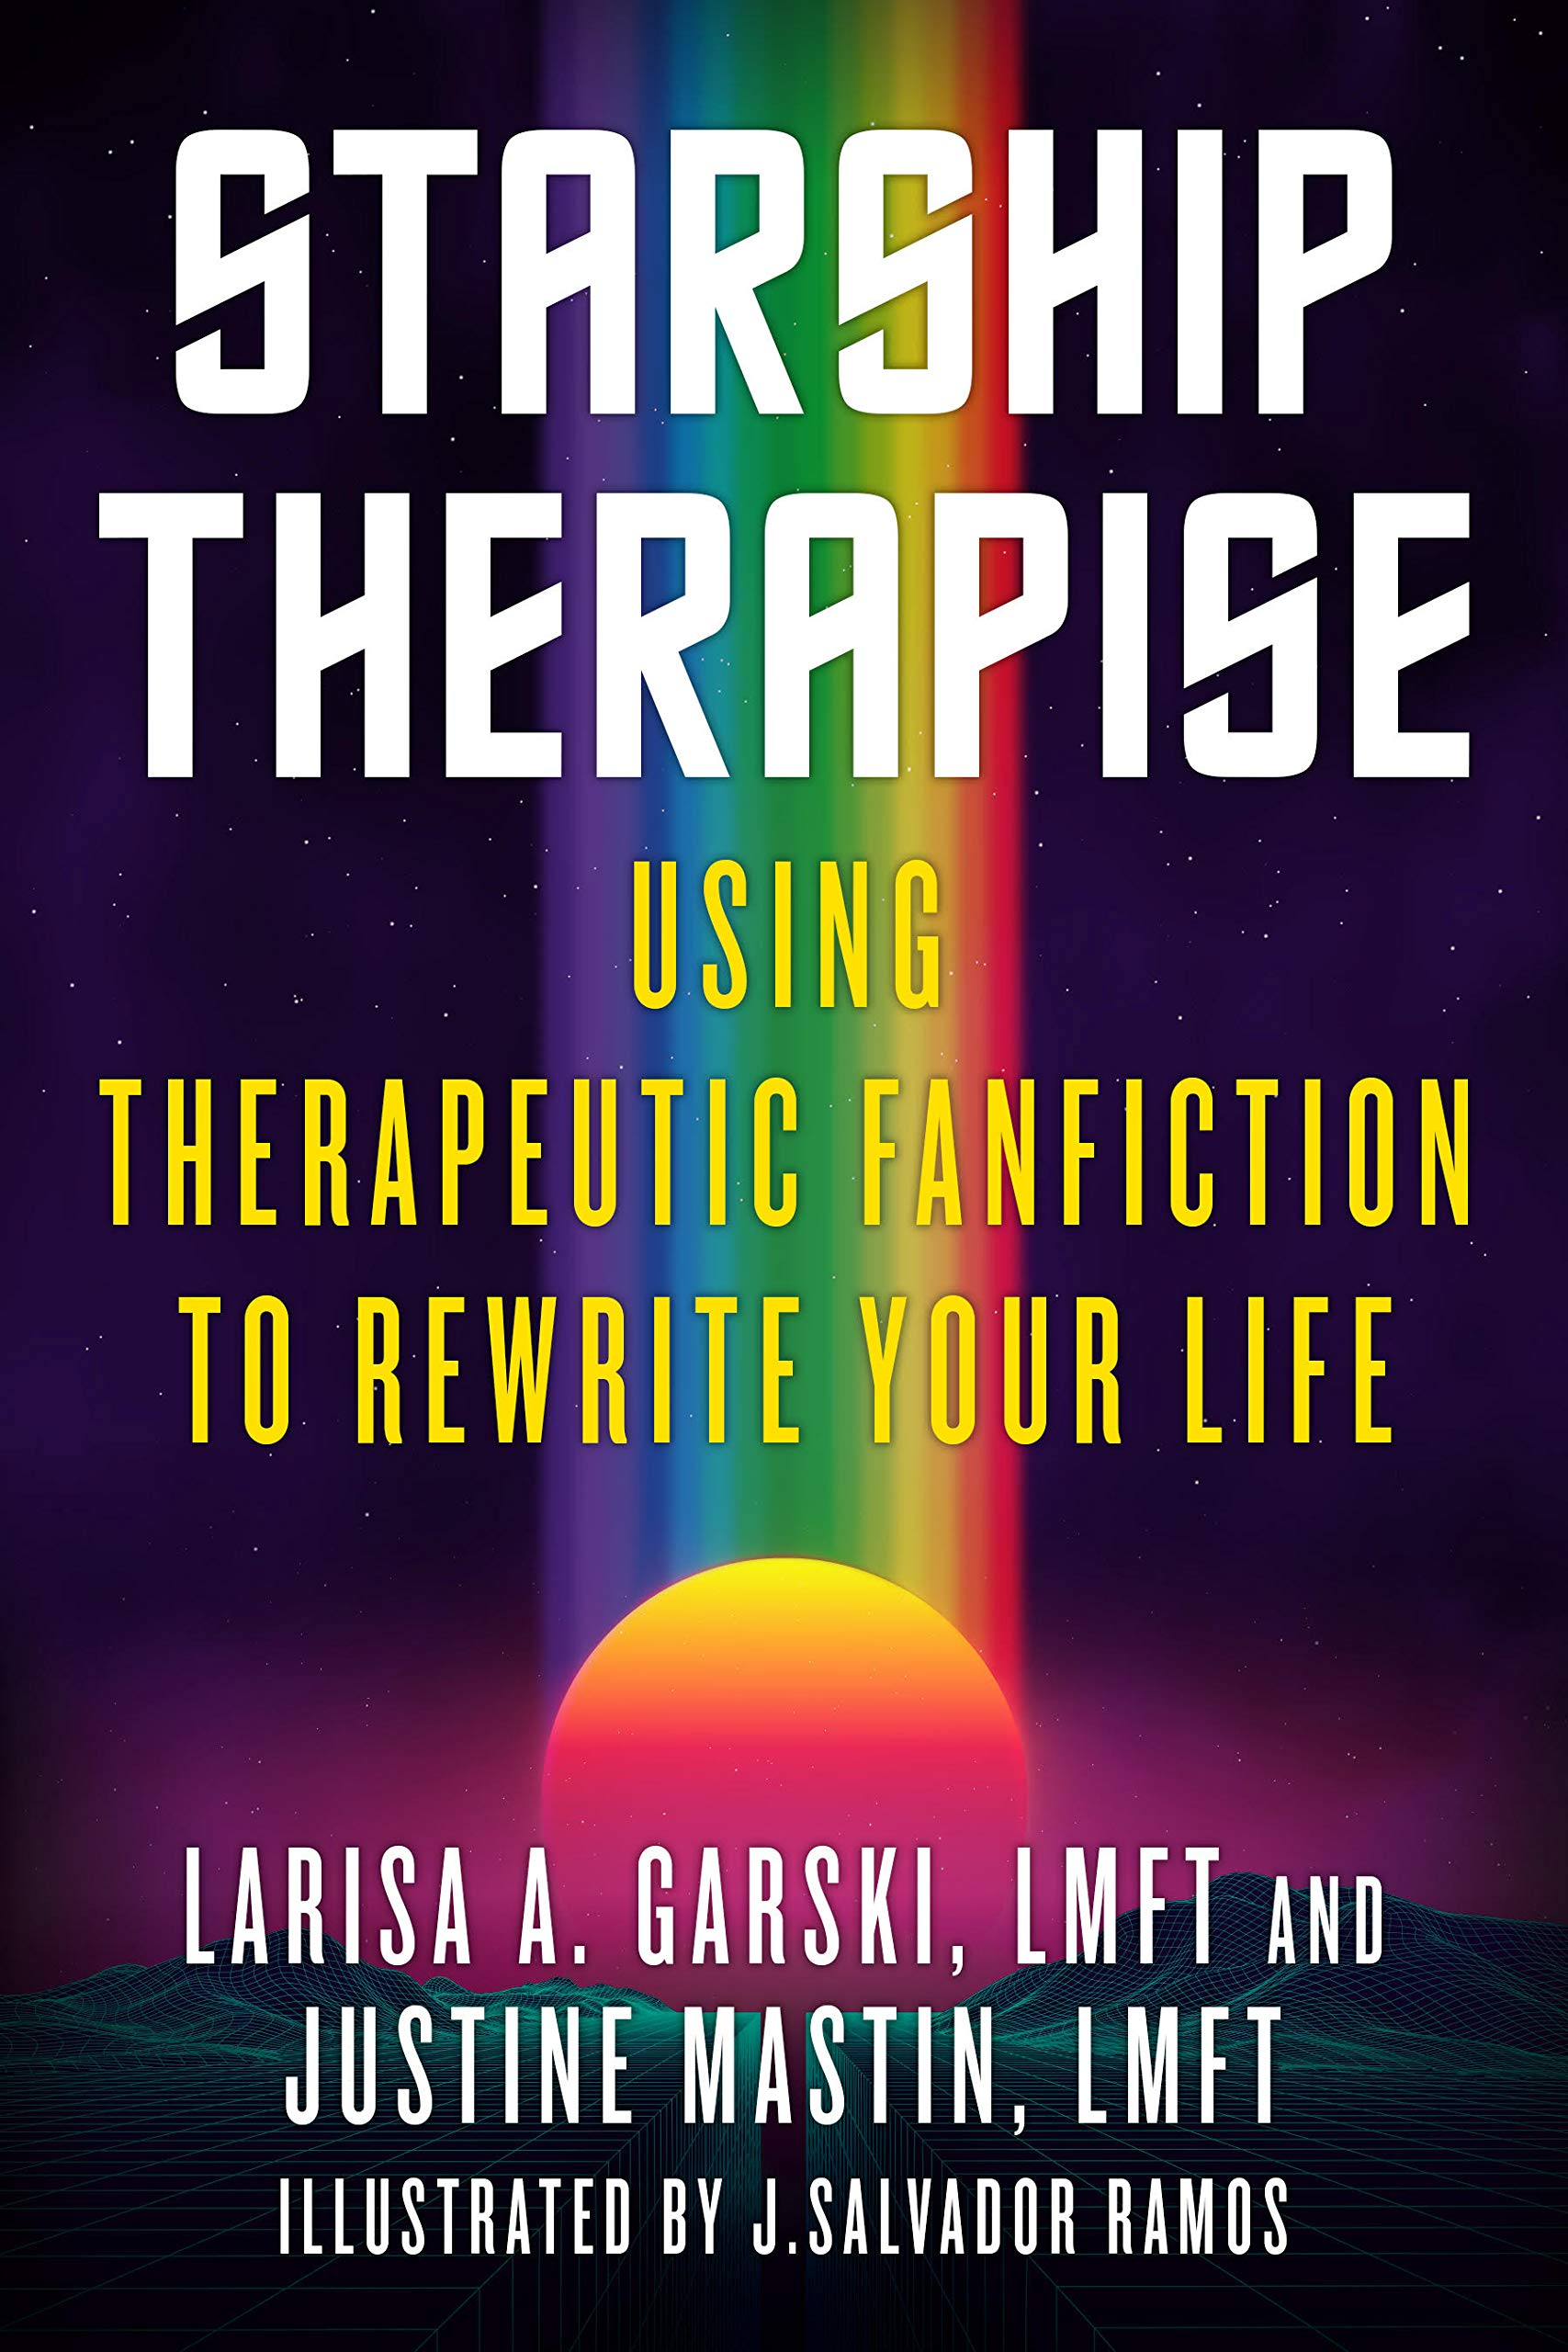 Starship Therapise: Using Therapeutic Fanfiction to Rewrite Your Life